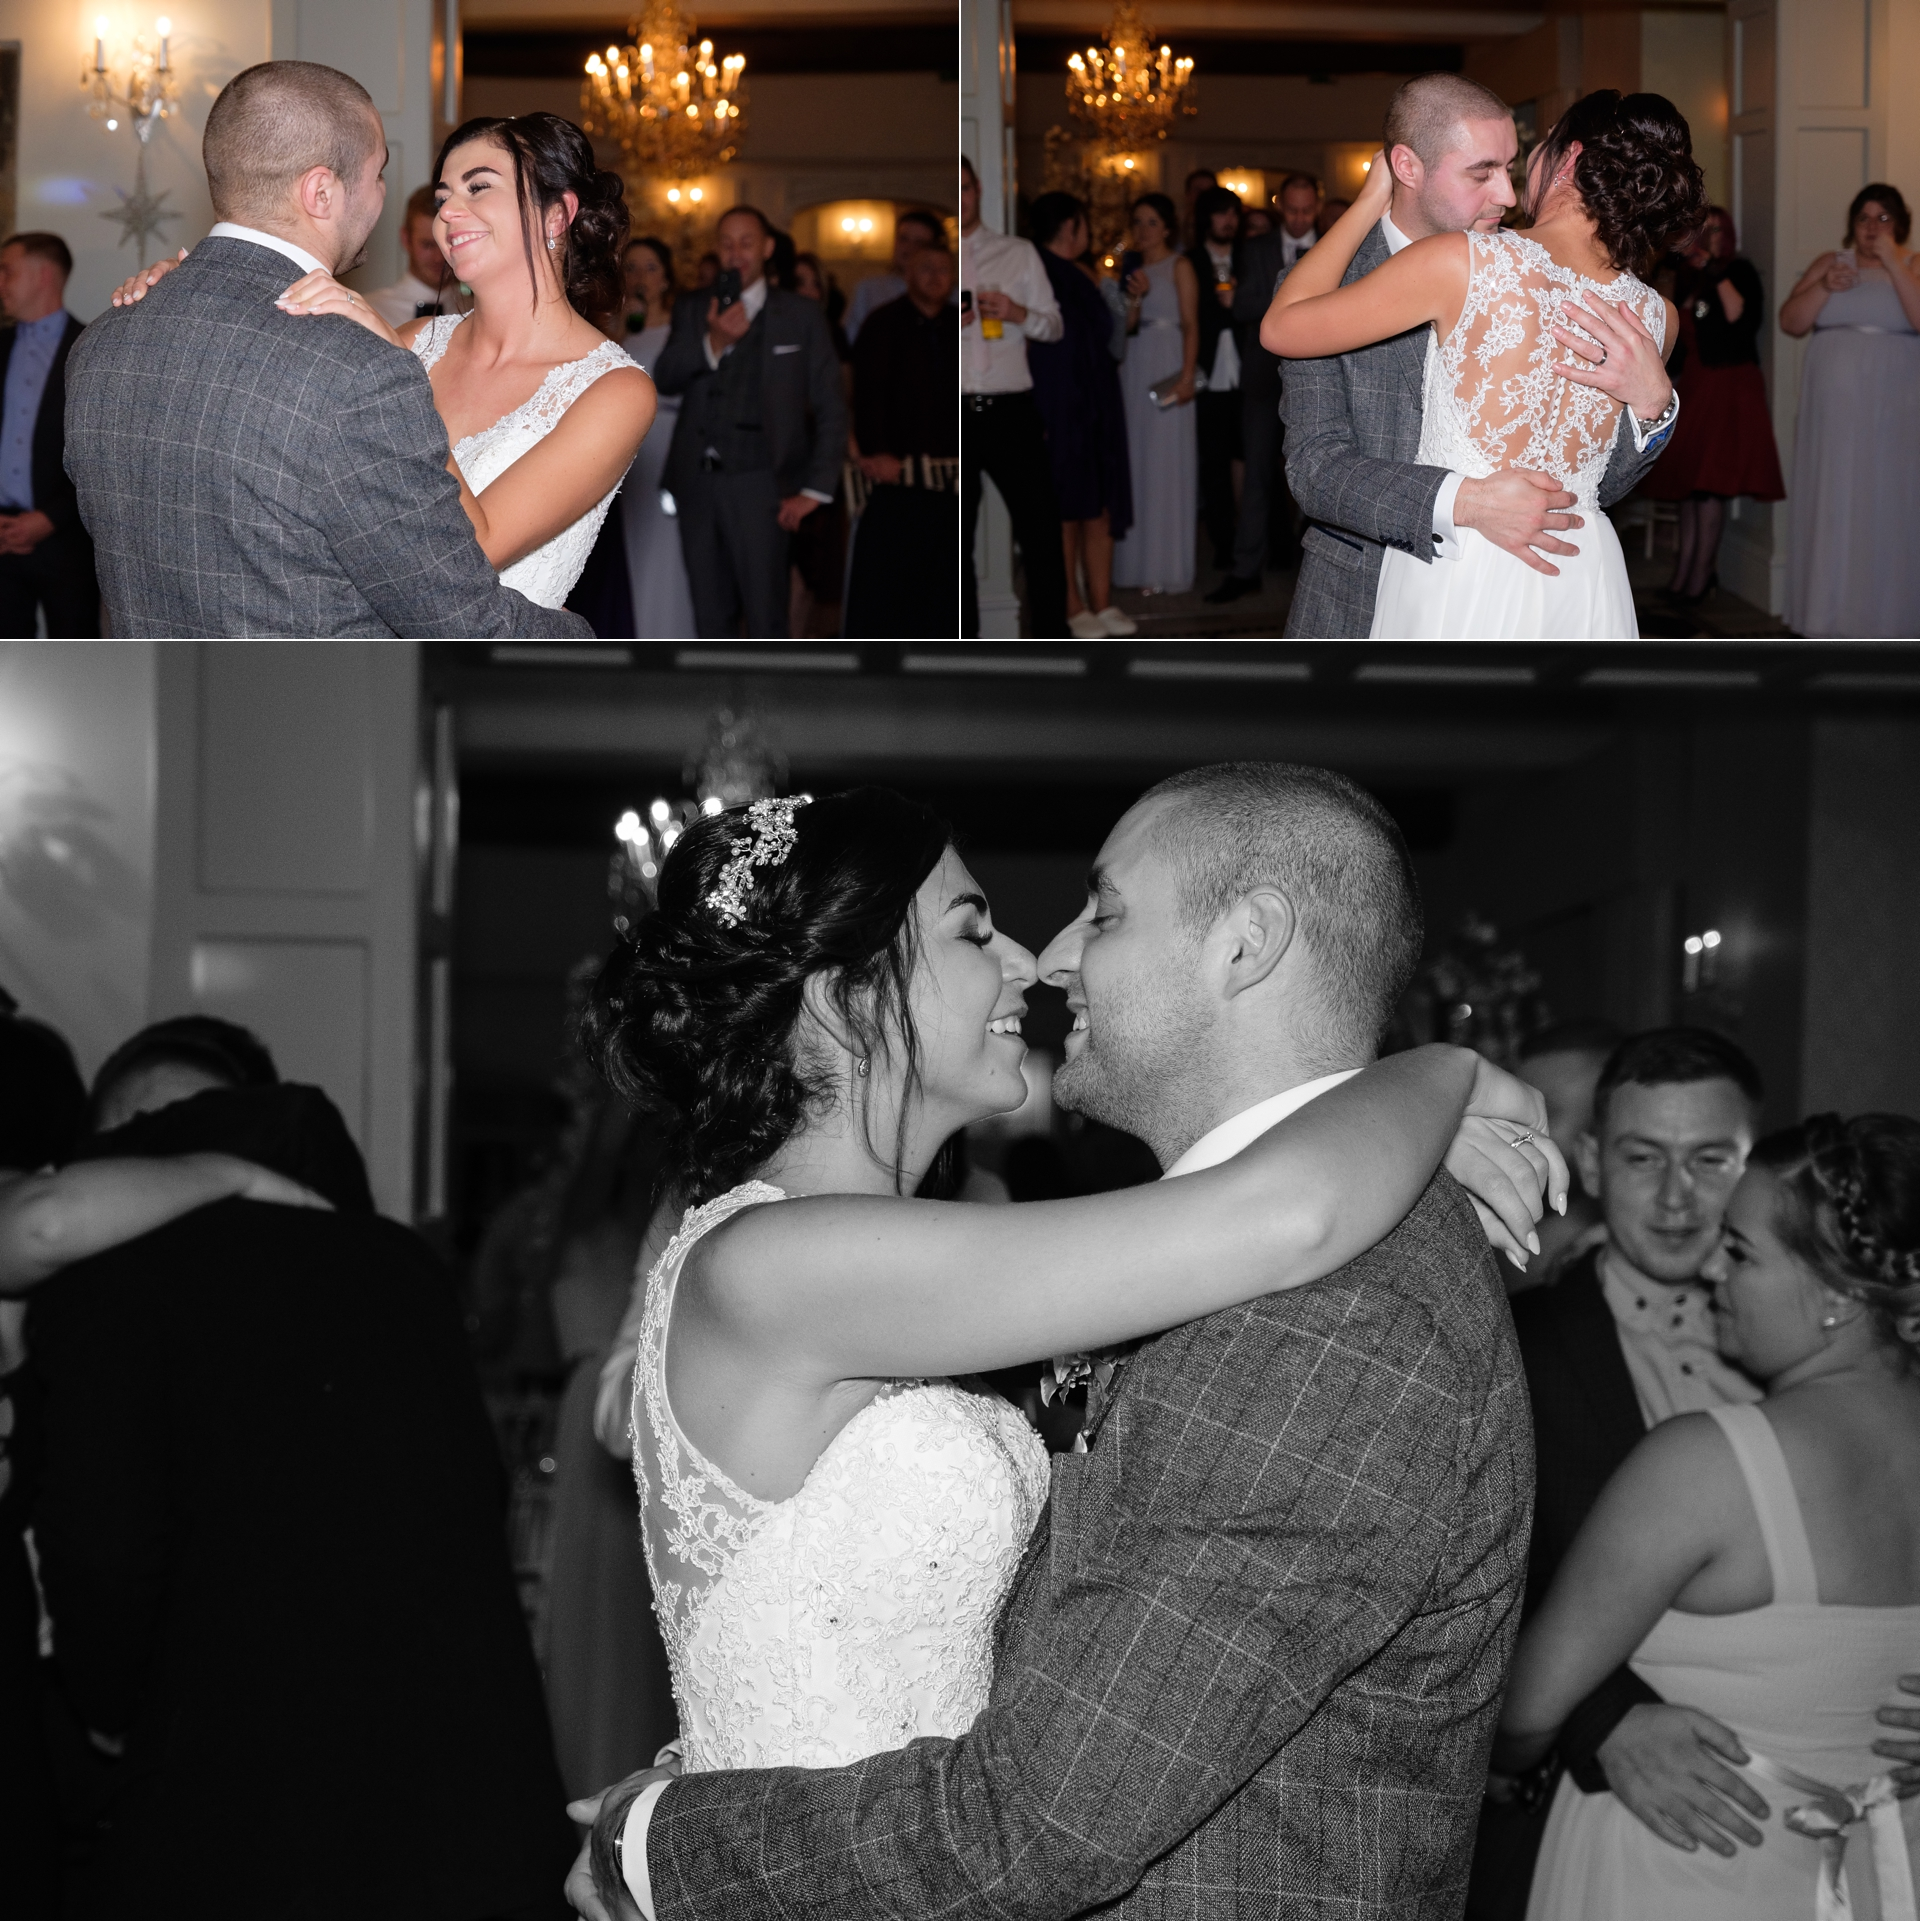 weston hall weddings photo 22.jpg